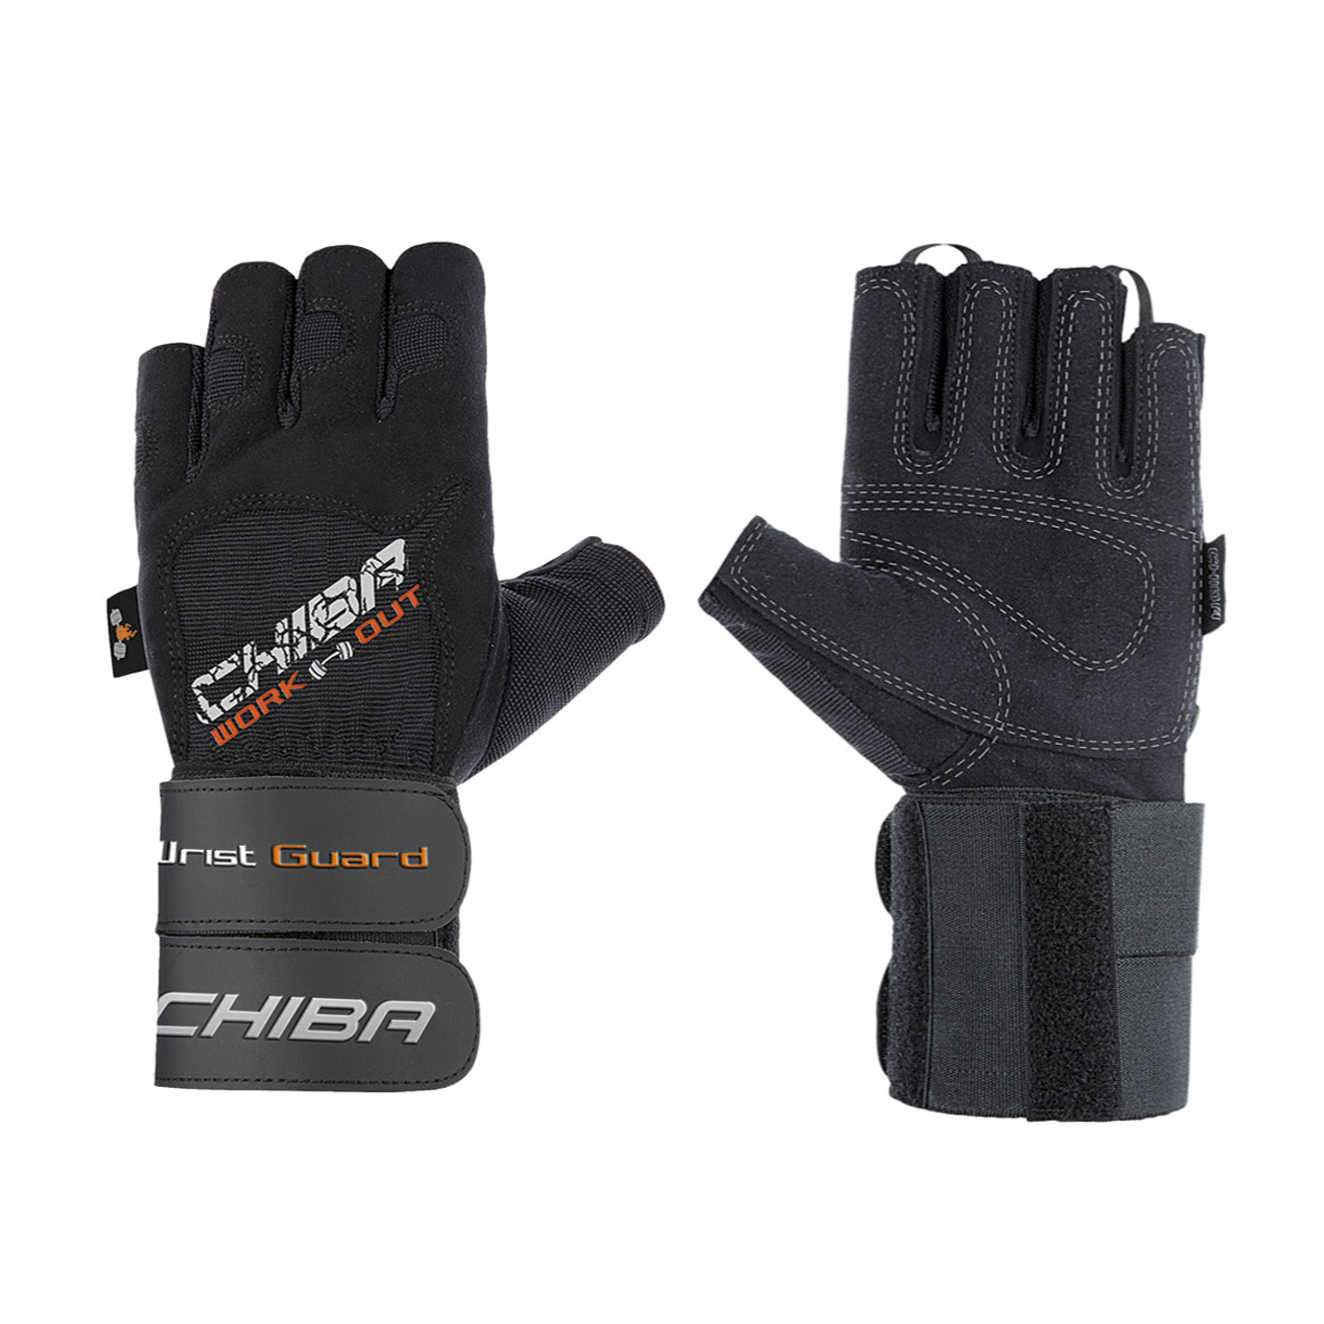 PROFESSIONAL WRISTGUARD II TRAINING GLOVES PRETO